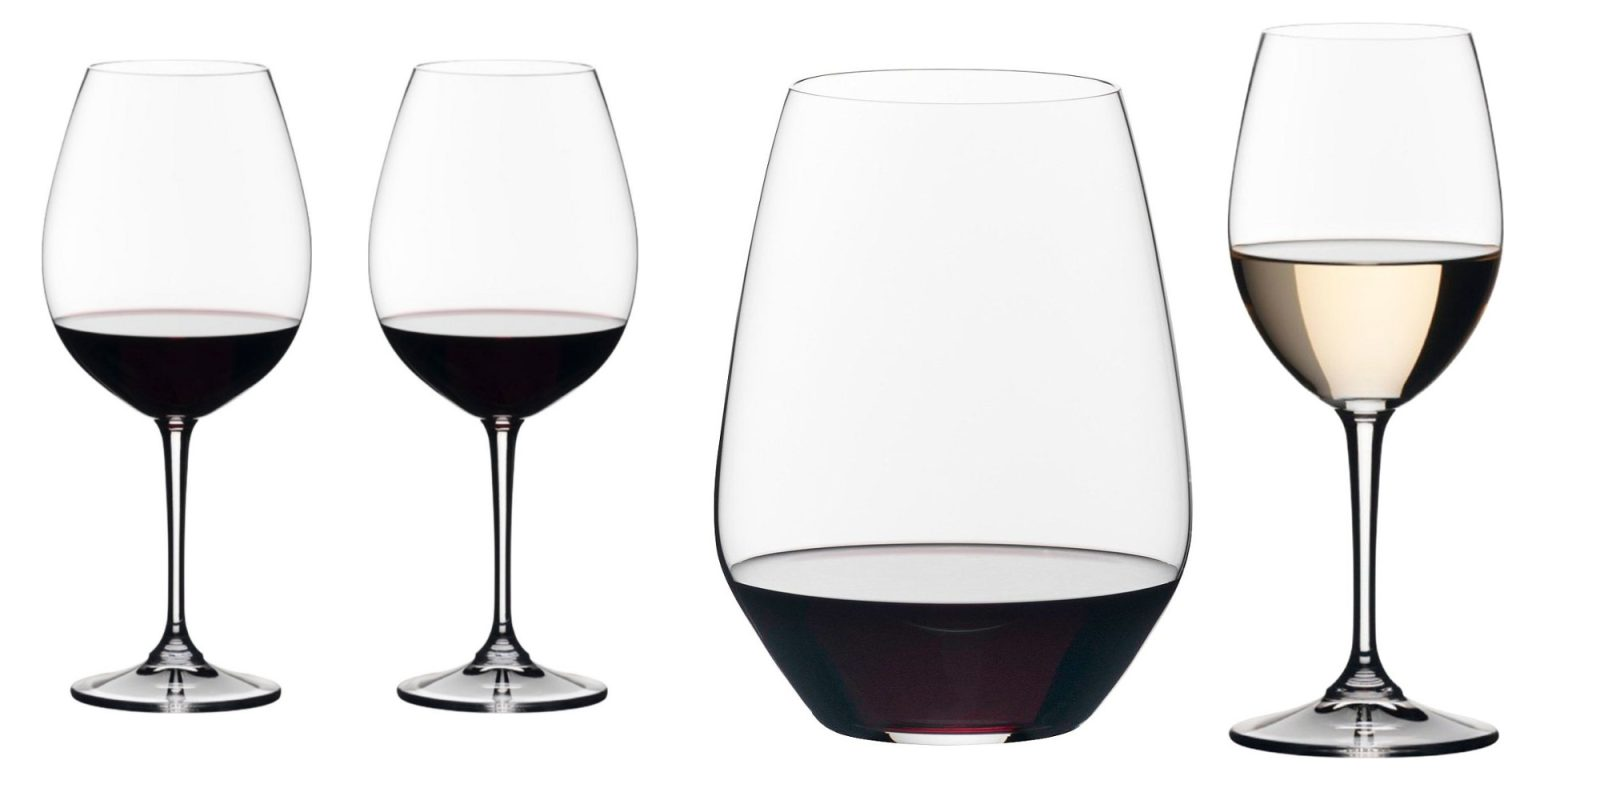 Upgrade your drinkware and wine glasses today, 4-packs now $10 (up to 75% off)